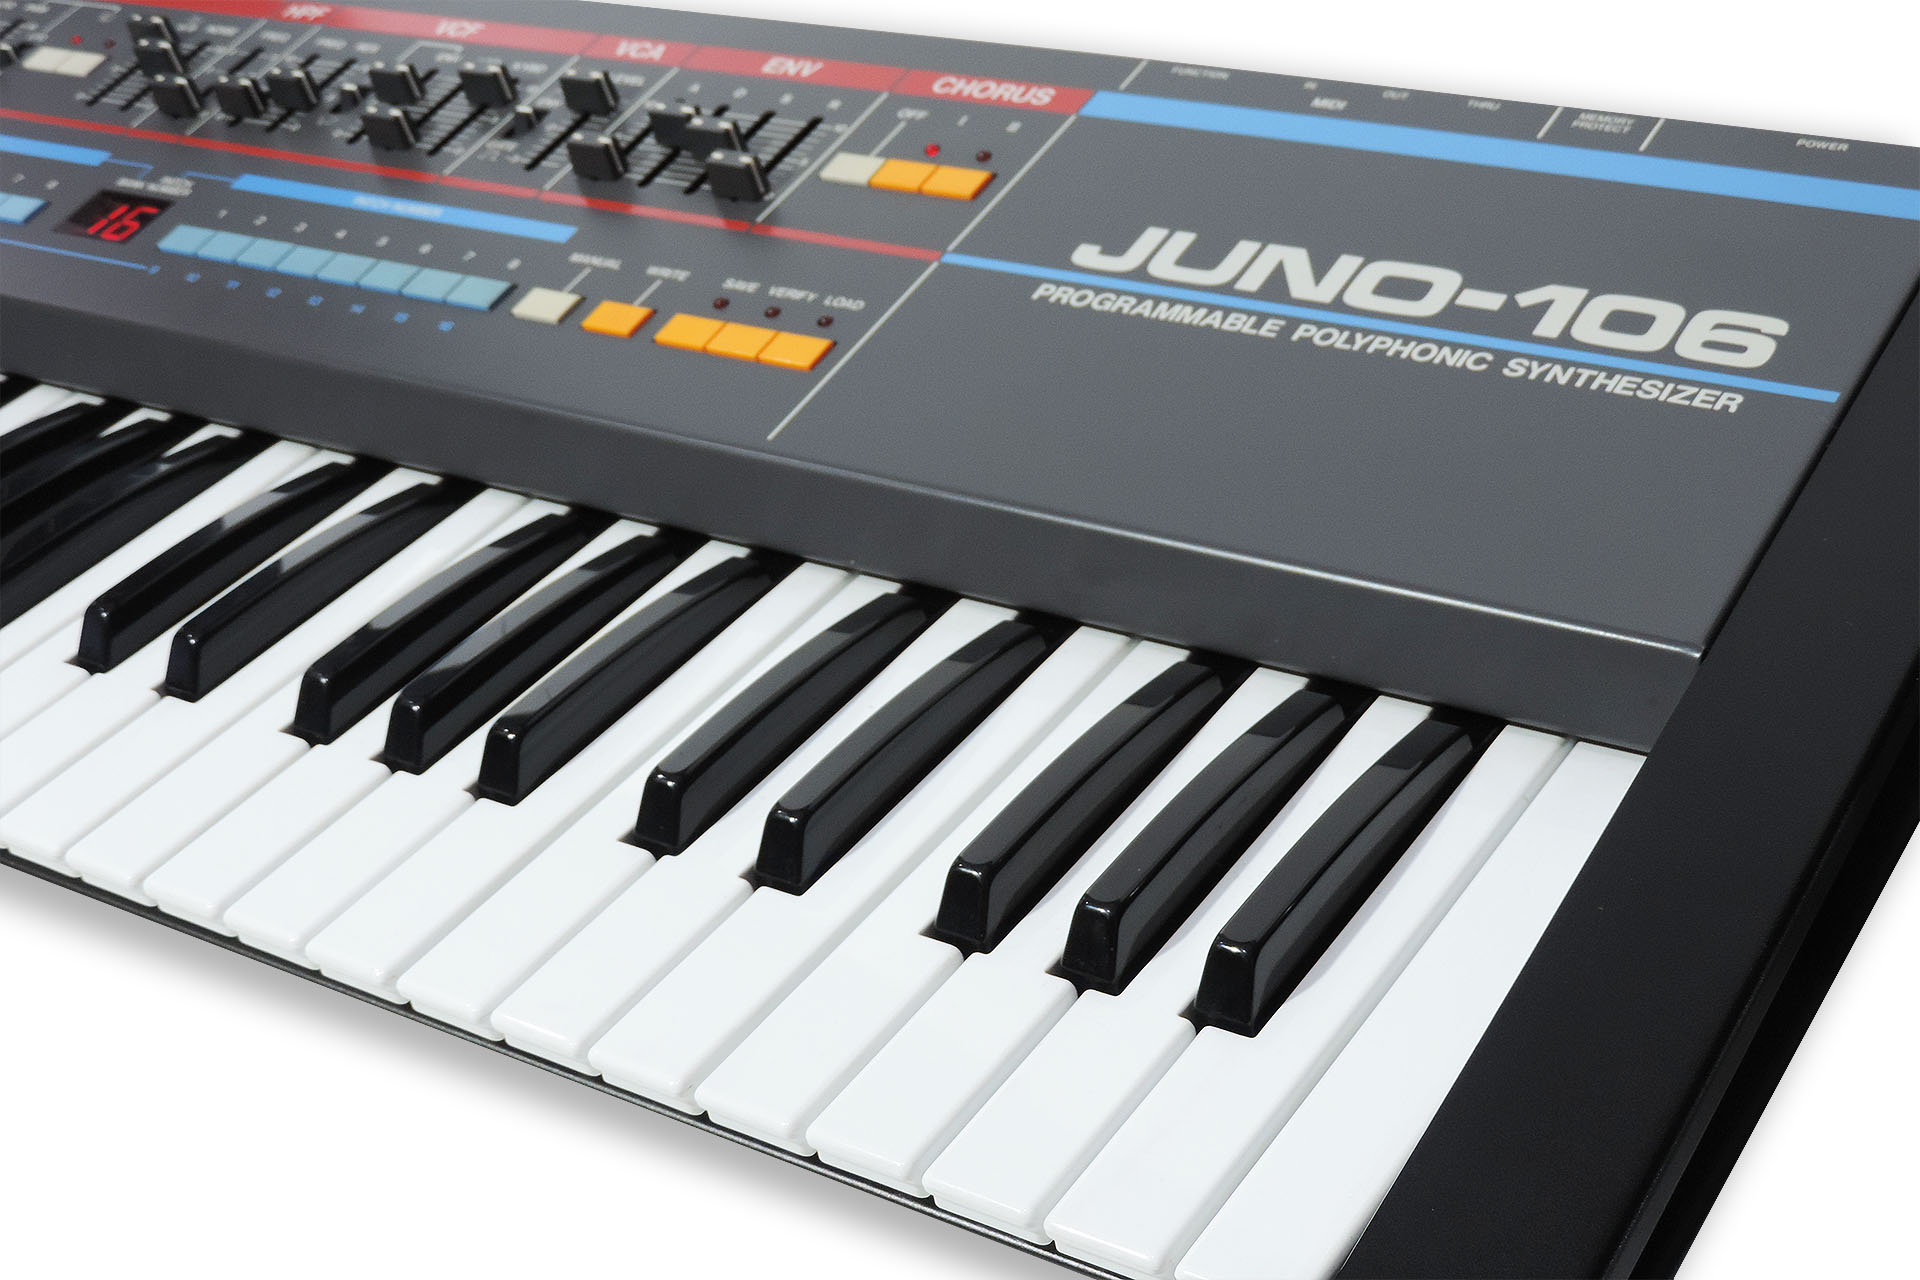 My favourite synth, the Roland Juno-106.